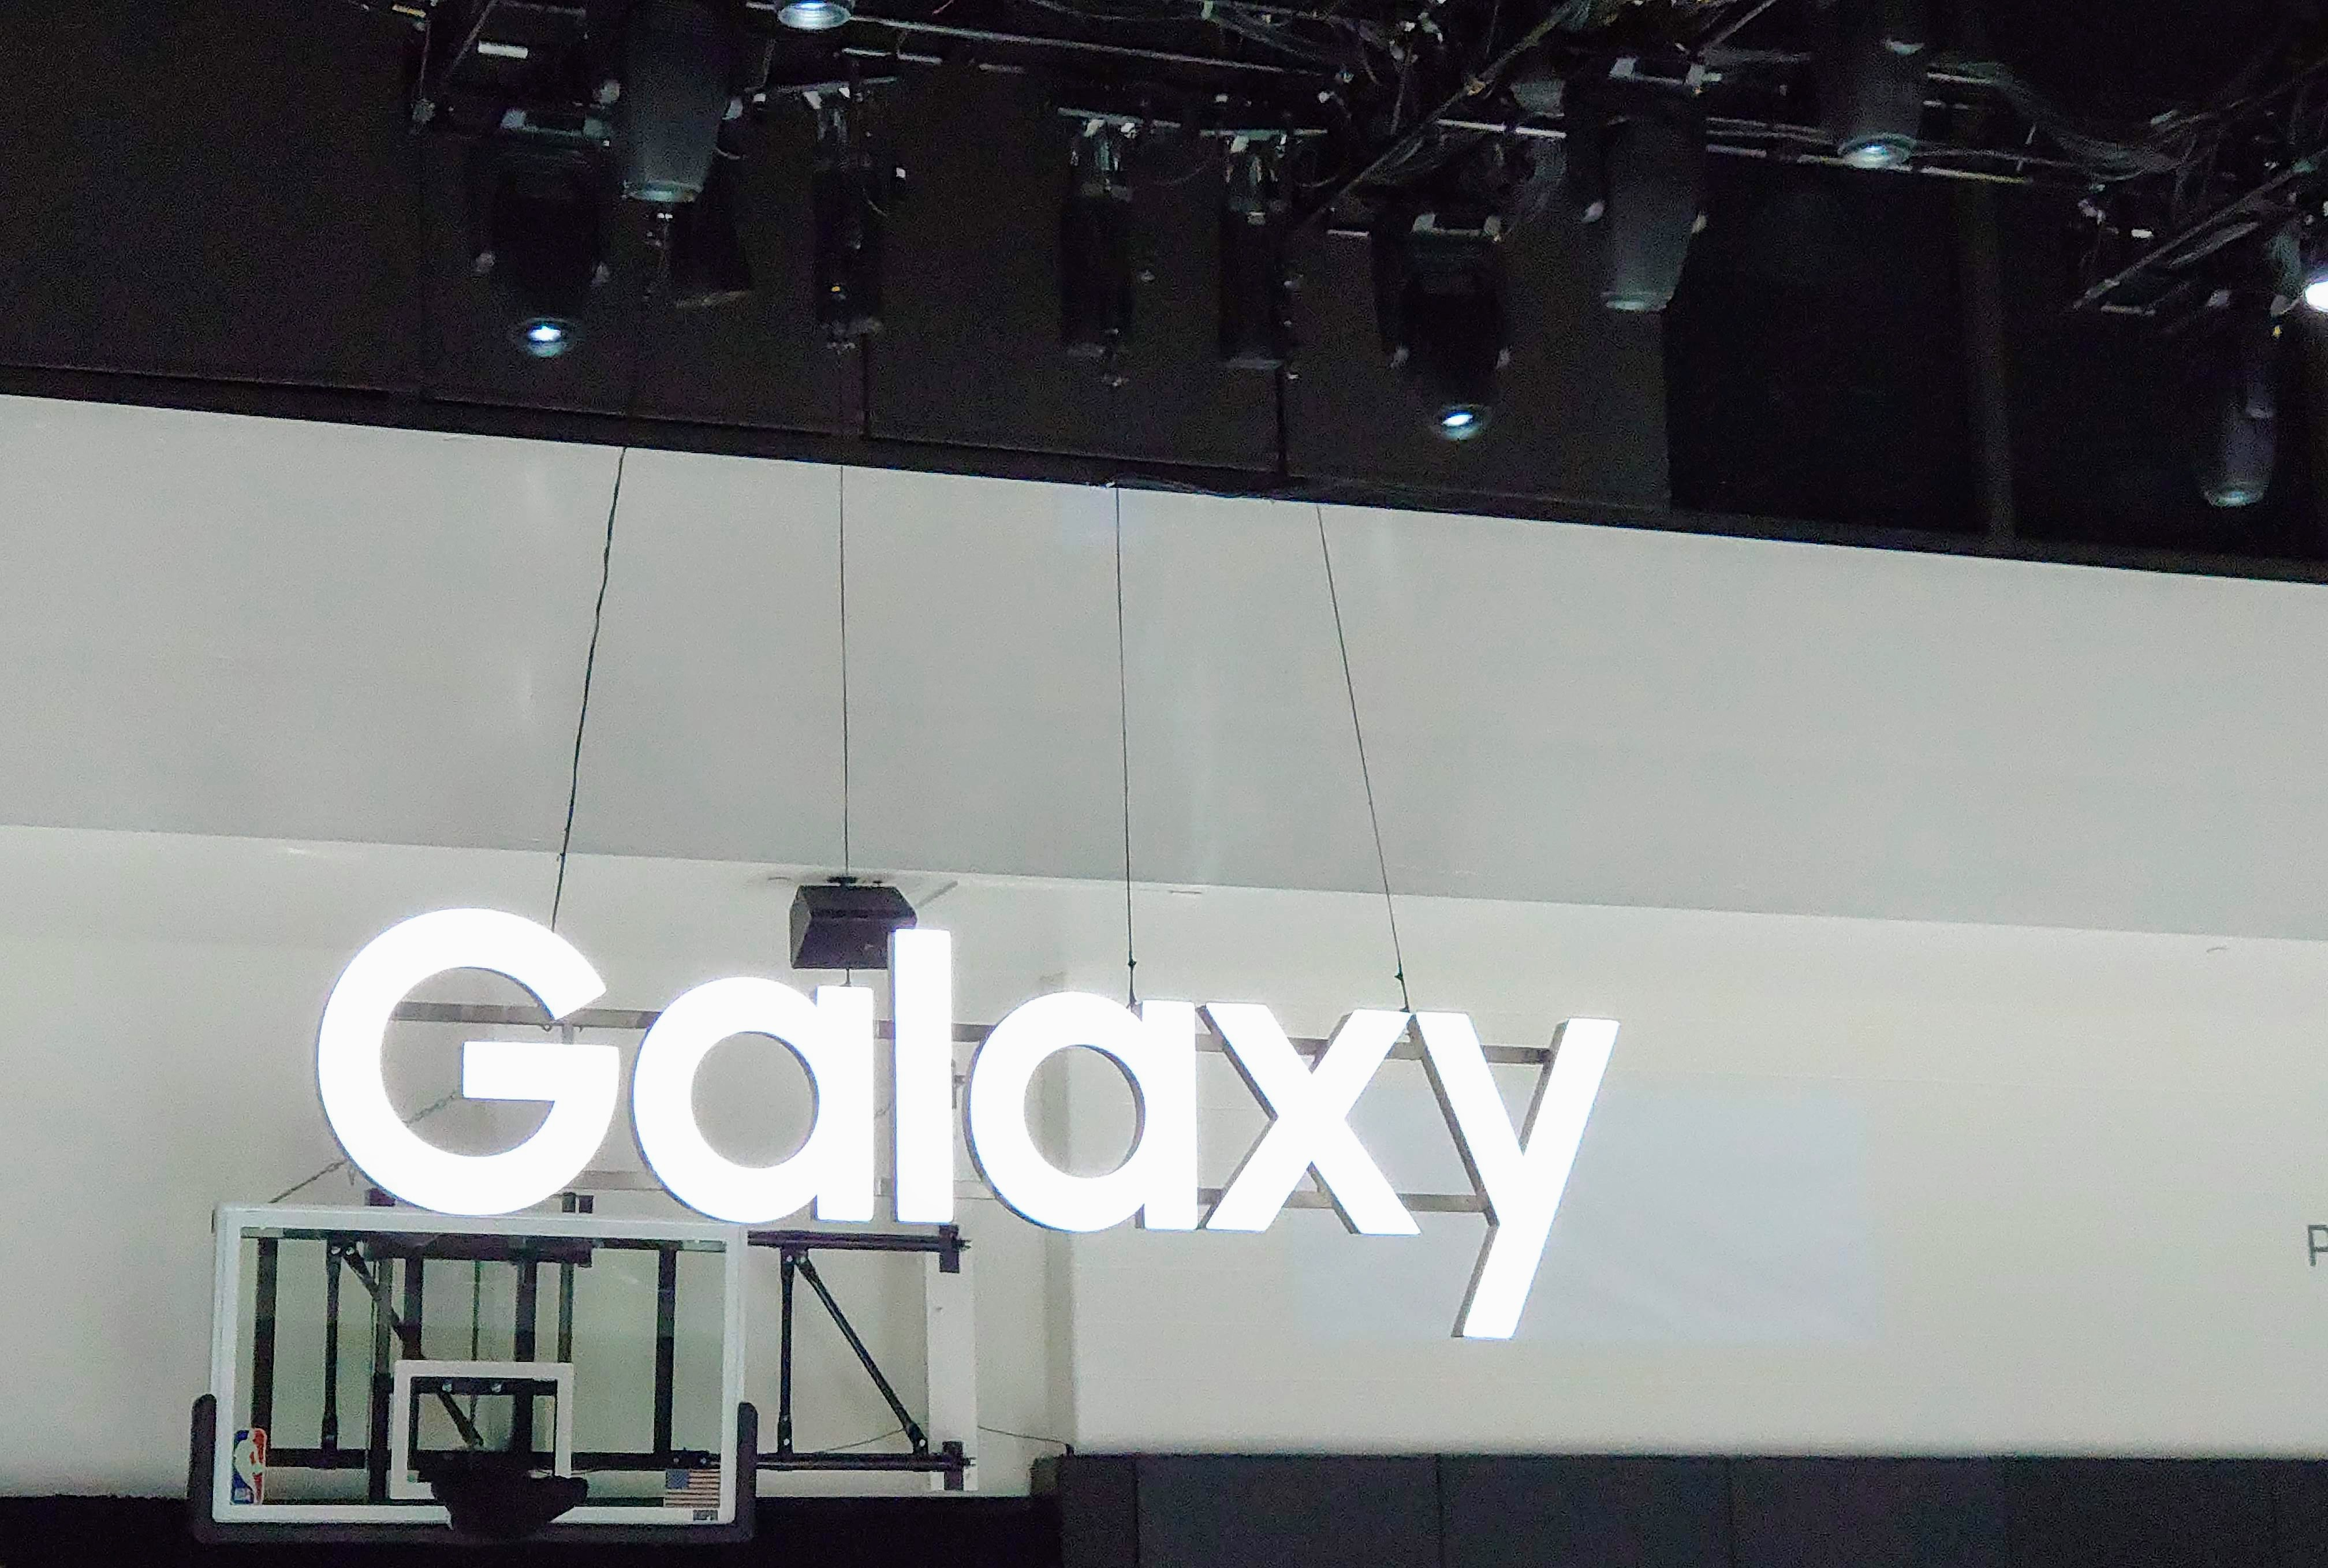 Gartner: Samsung and Huawei sold one-third of phones in Q2